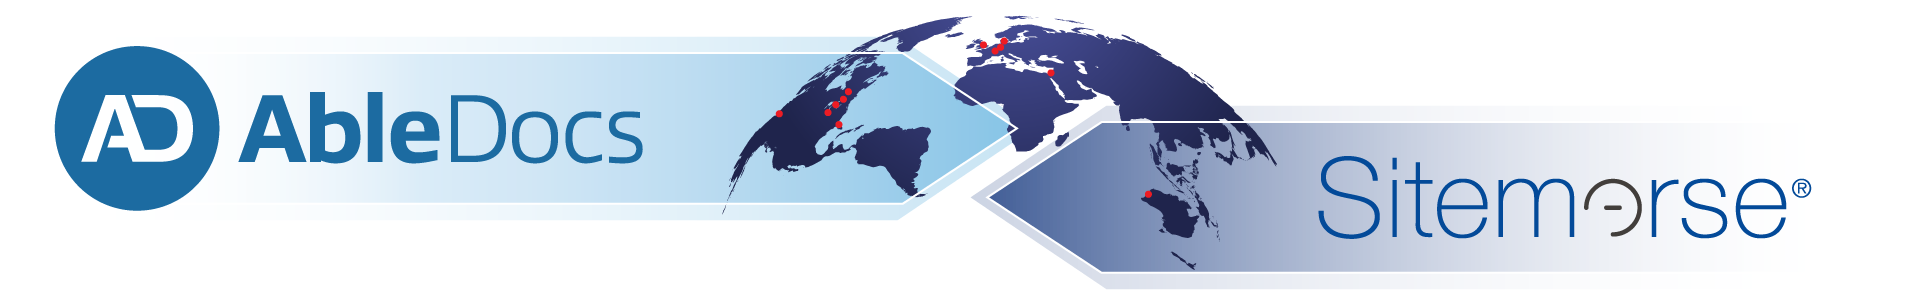 Logos for AbleDocs and Sitemorse on either side of a map of the world.